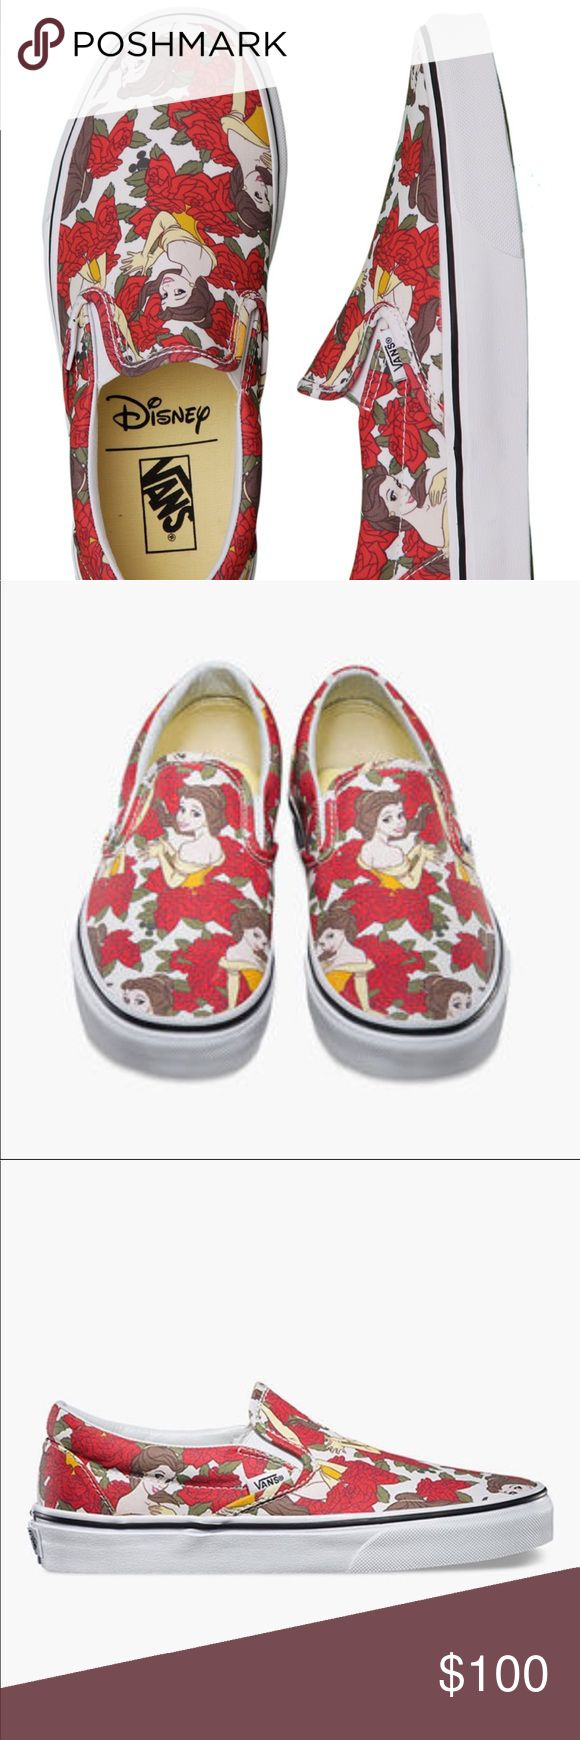 Disney Vans size women's 6 More photos coming Size 6 Disney Vans, only worn once still in good condition. Some of the red from the shoe bled onto the rubber but still in great condition. So so so cute!!!!!! Vans Shoes Sneakers